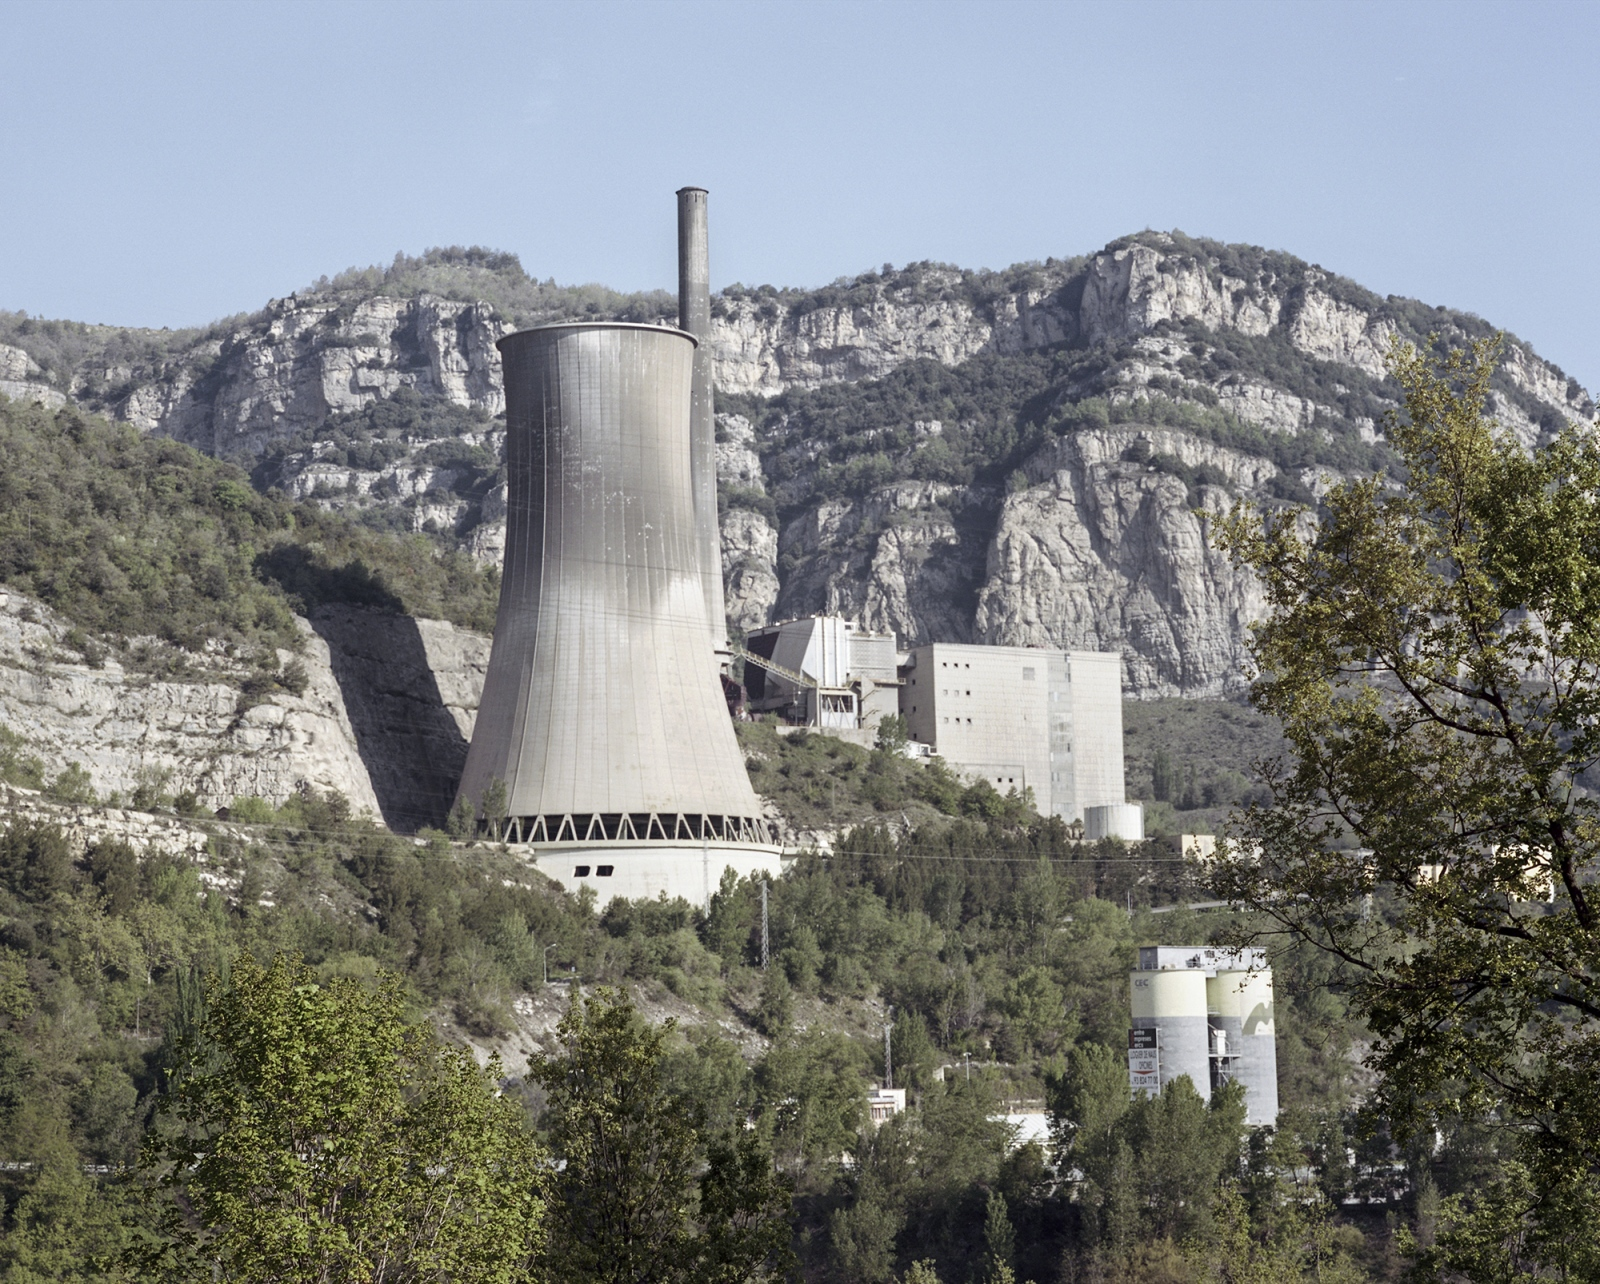 Spain, Cercs. The former Thermal Plant that was working with coal. The plant coused acid raining in the past, and in 2011 it definetely closed. The plant was supposed to be converted in a biomass plant or in a research center for renovable energy but the plans have never been developed.